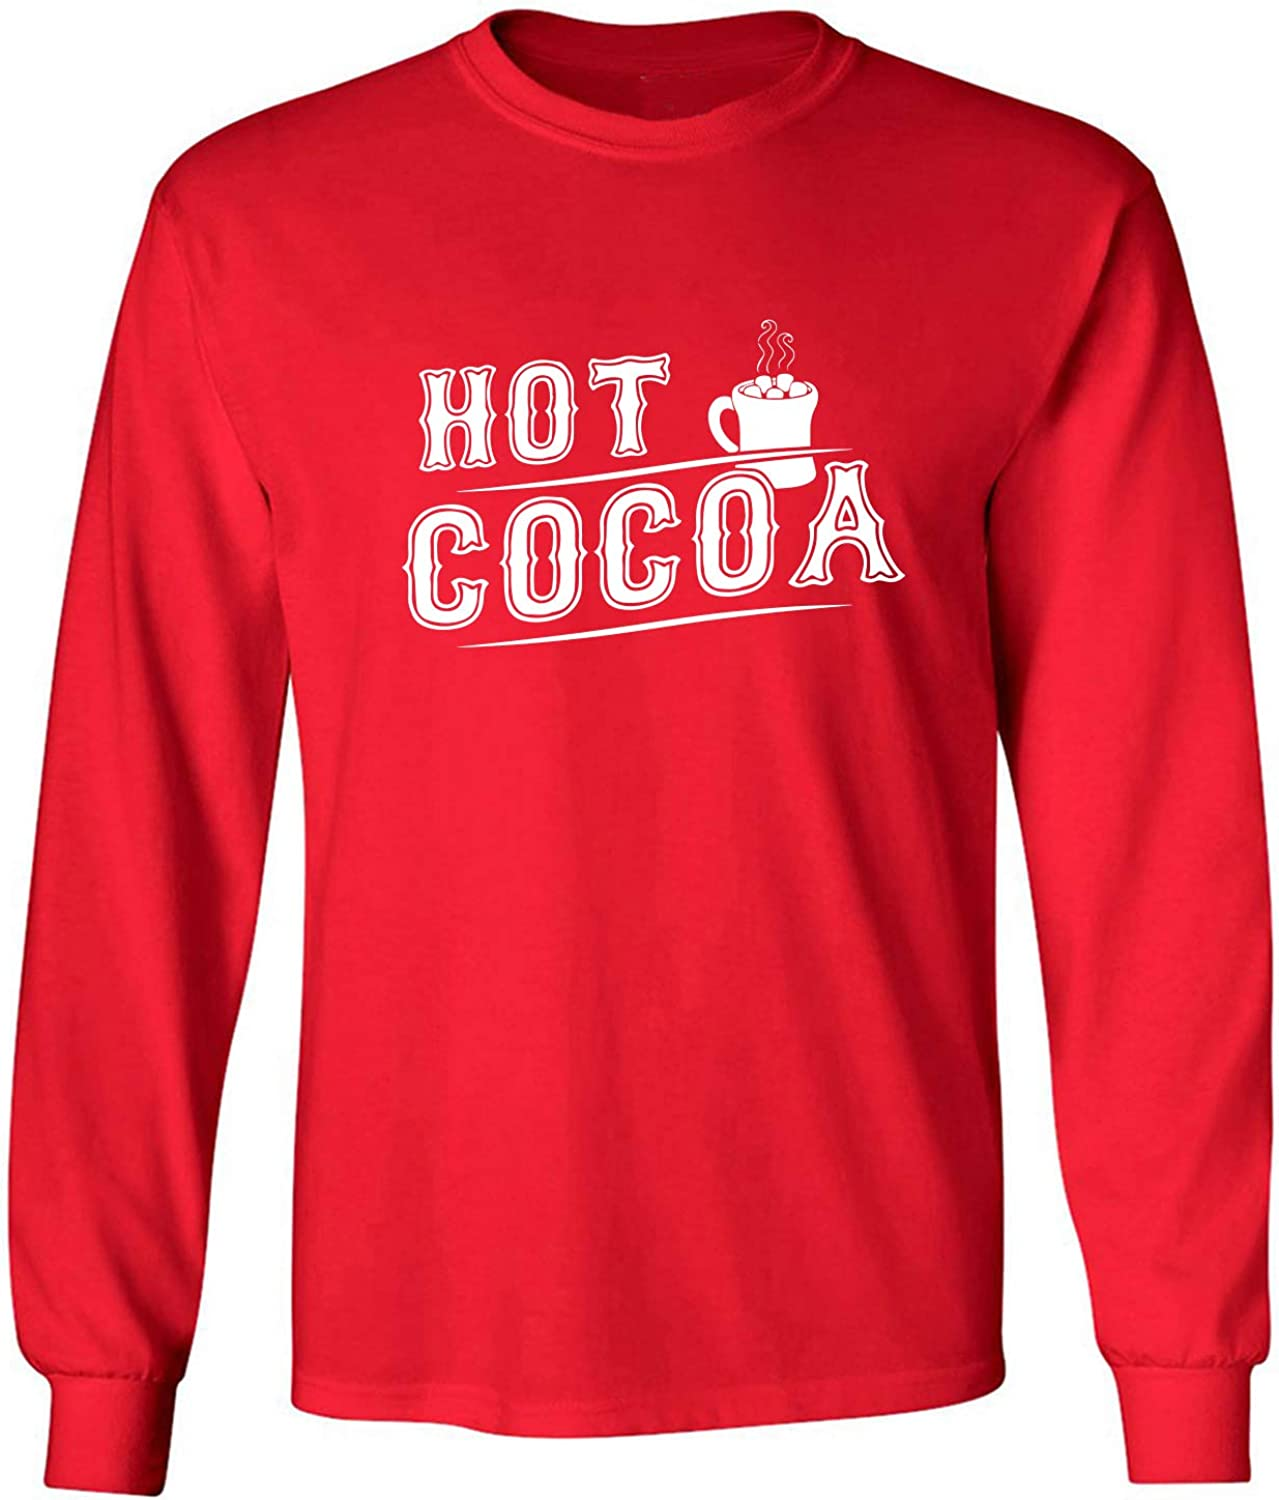 Hot Cocoa Adult Long Sleeve T-Shirt in Red - XXXX-Large